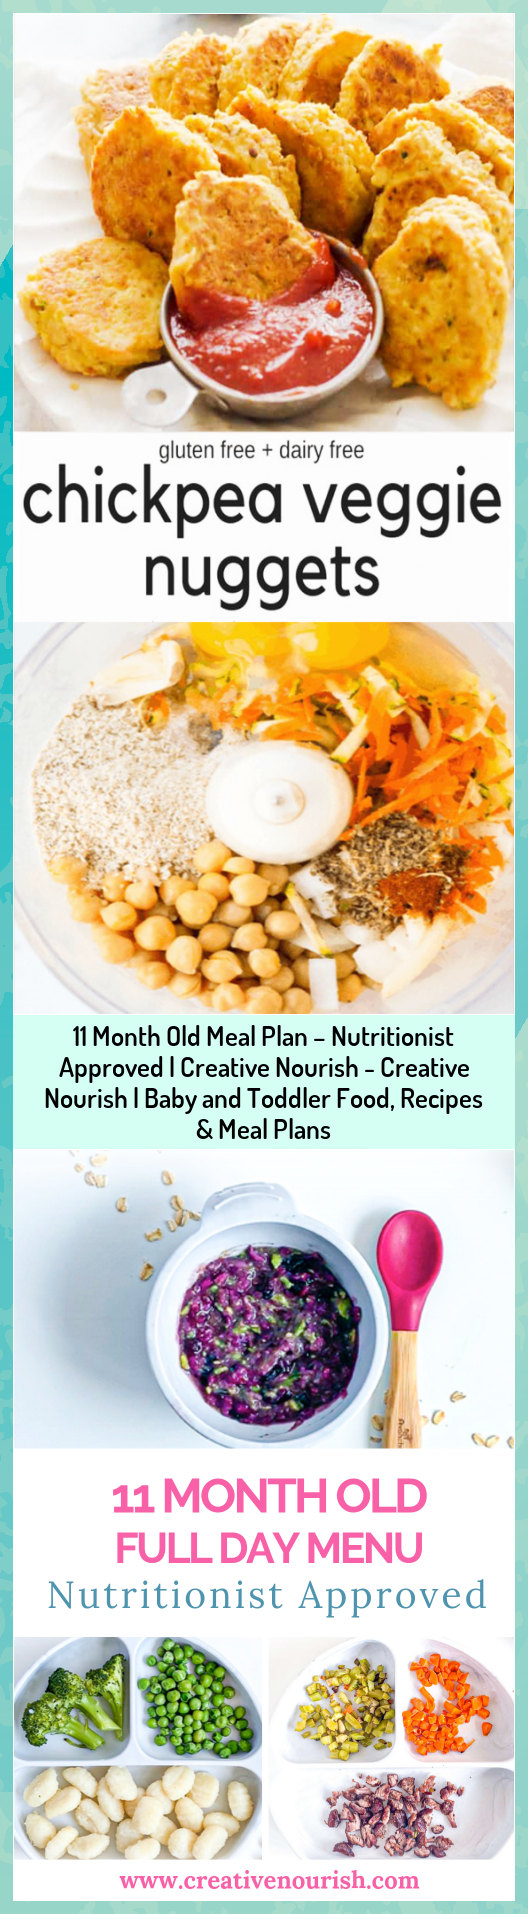 11 Month Old Meal Plan – Nutritionist Approved | Creative Nourish - Creative Nourish | Baby and Toddler Food, Recipes & Meal Plans #Approved #baby #Creative #Food #Meal #Month #nourish #Nutritionist #Plan #Plans #Recipes #Toddler